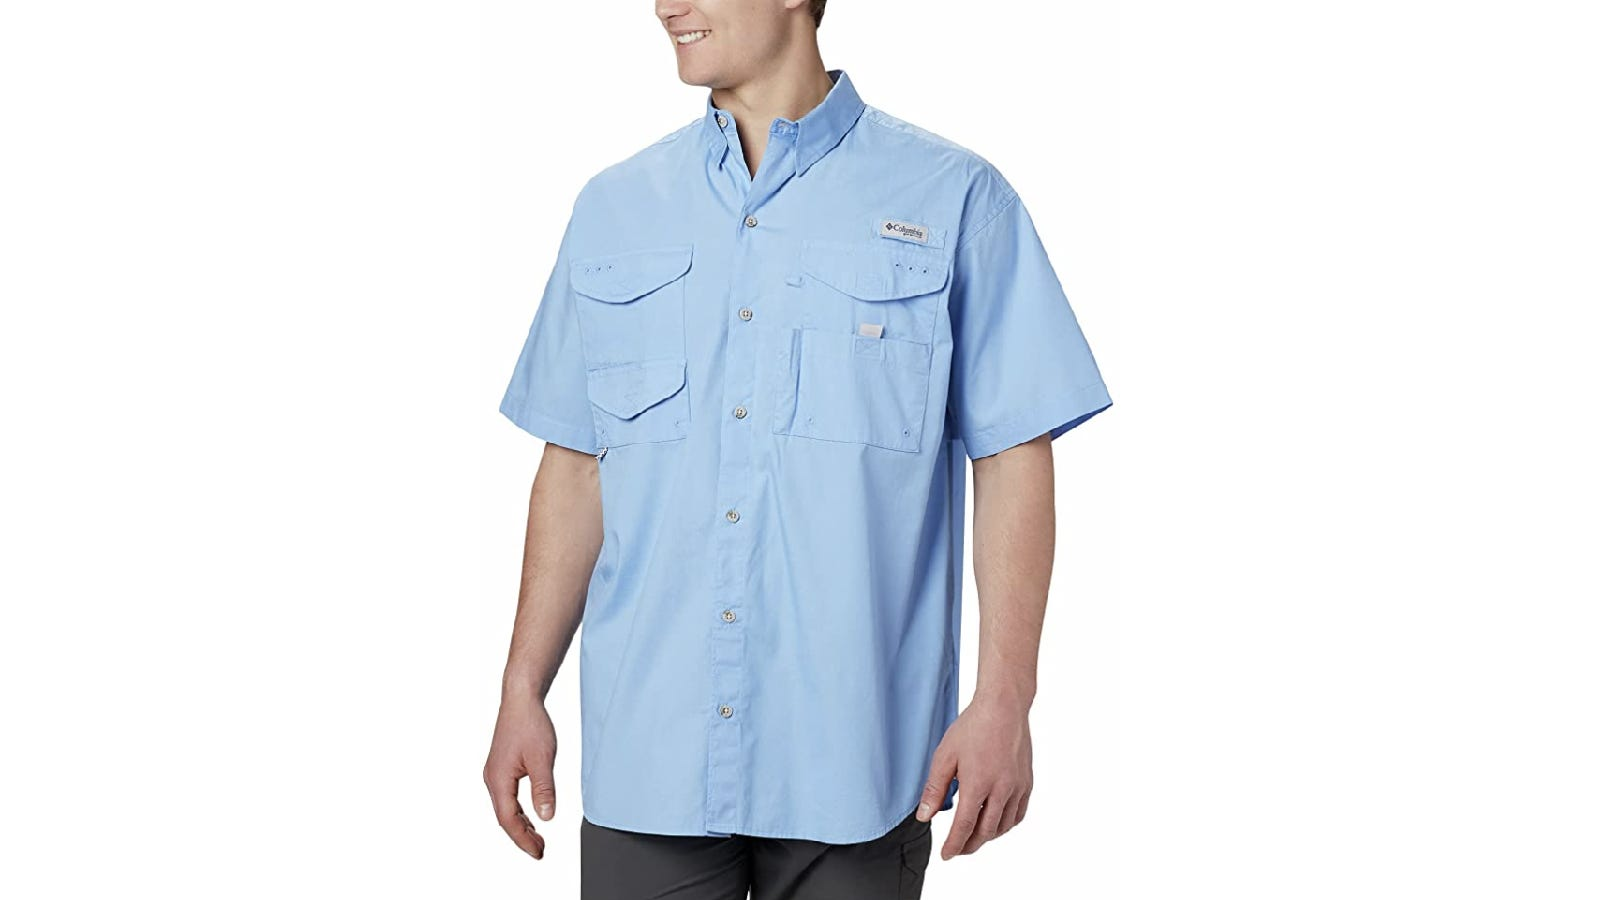 A model at centerframe lifts the top right pocket flap of a light blue button-up